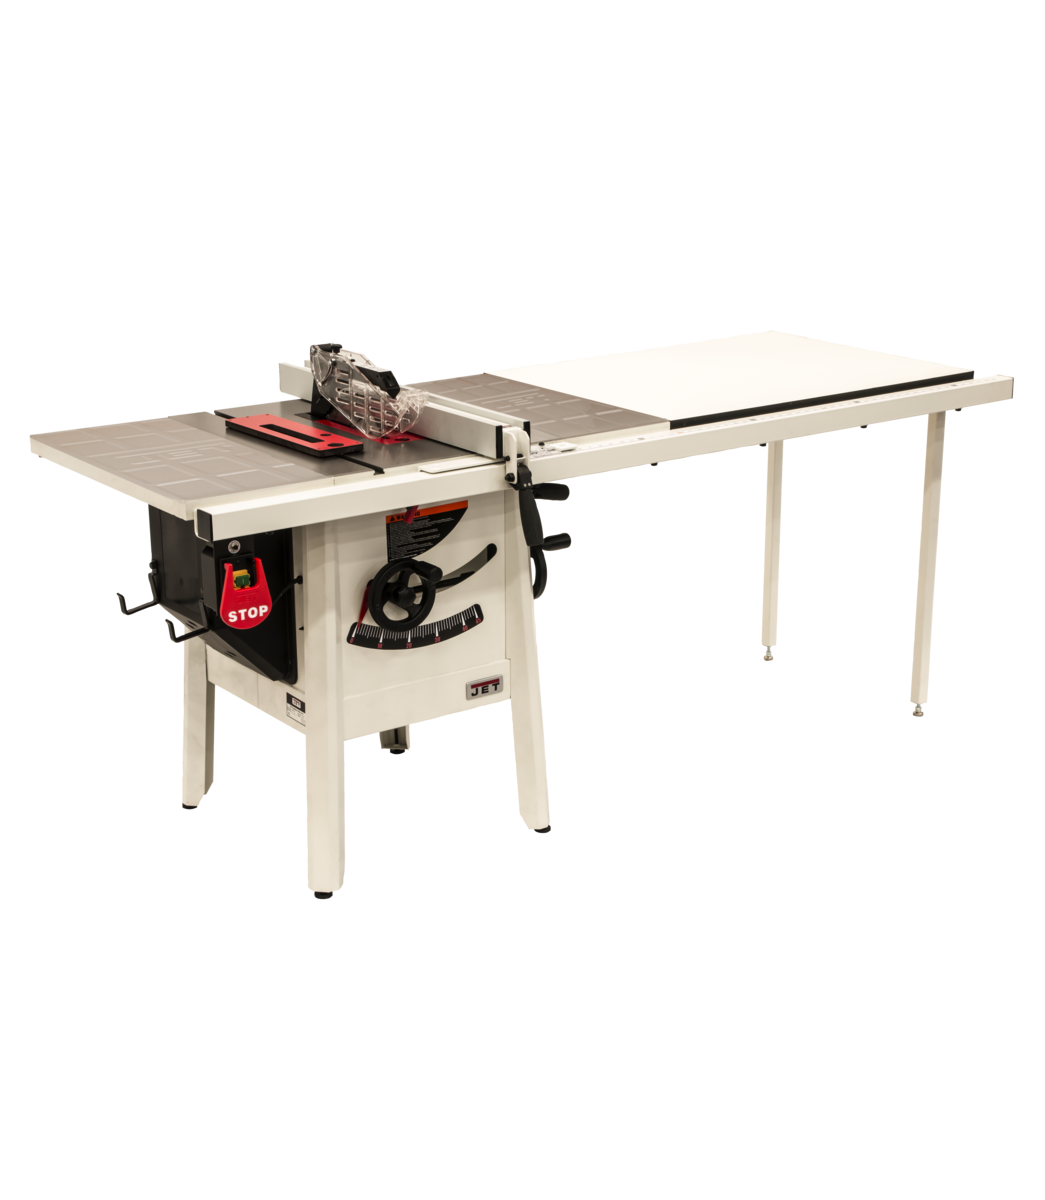 "The JPS-10 1.75 HP 115V 52"" Proshop Tablesaw with Steel wings"